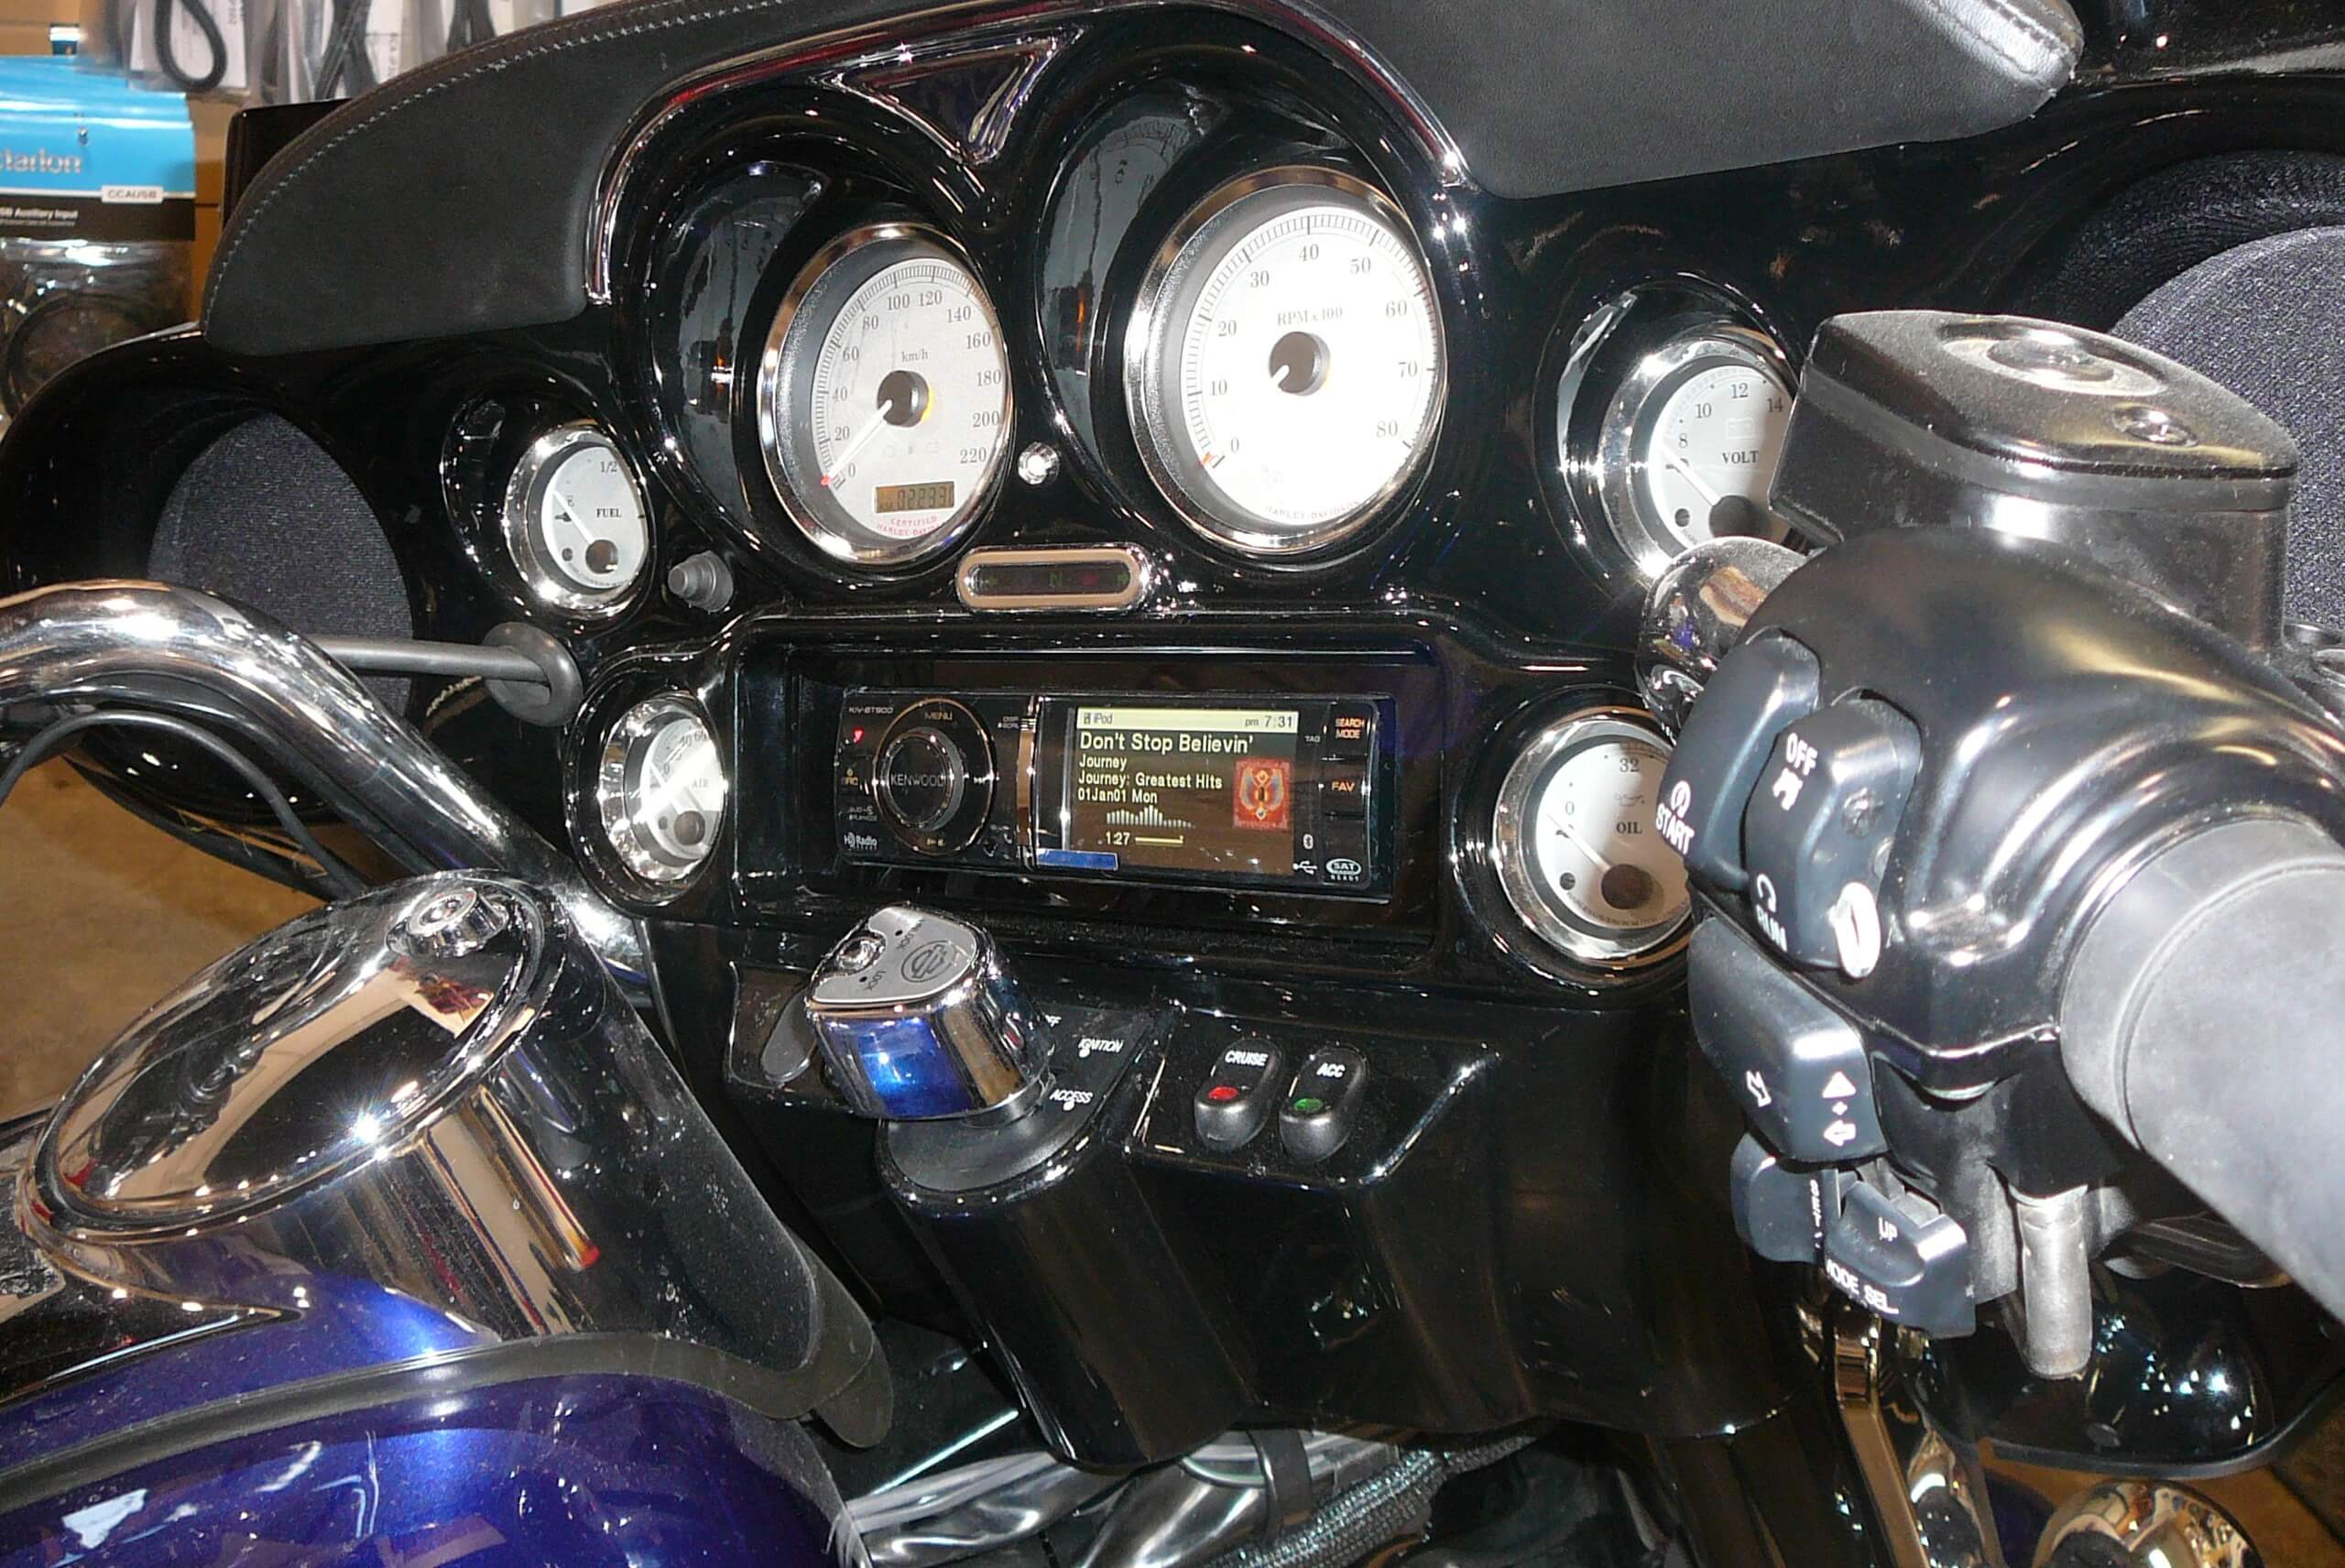 Motorcycle Stereo Upgrades Amp Speakers For Harley Baggers